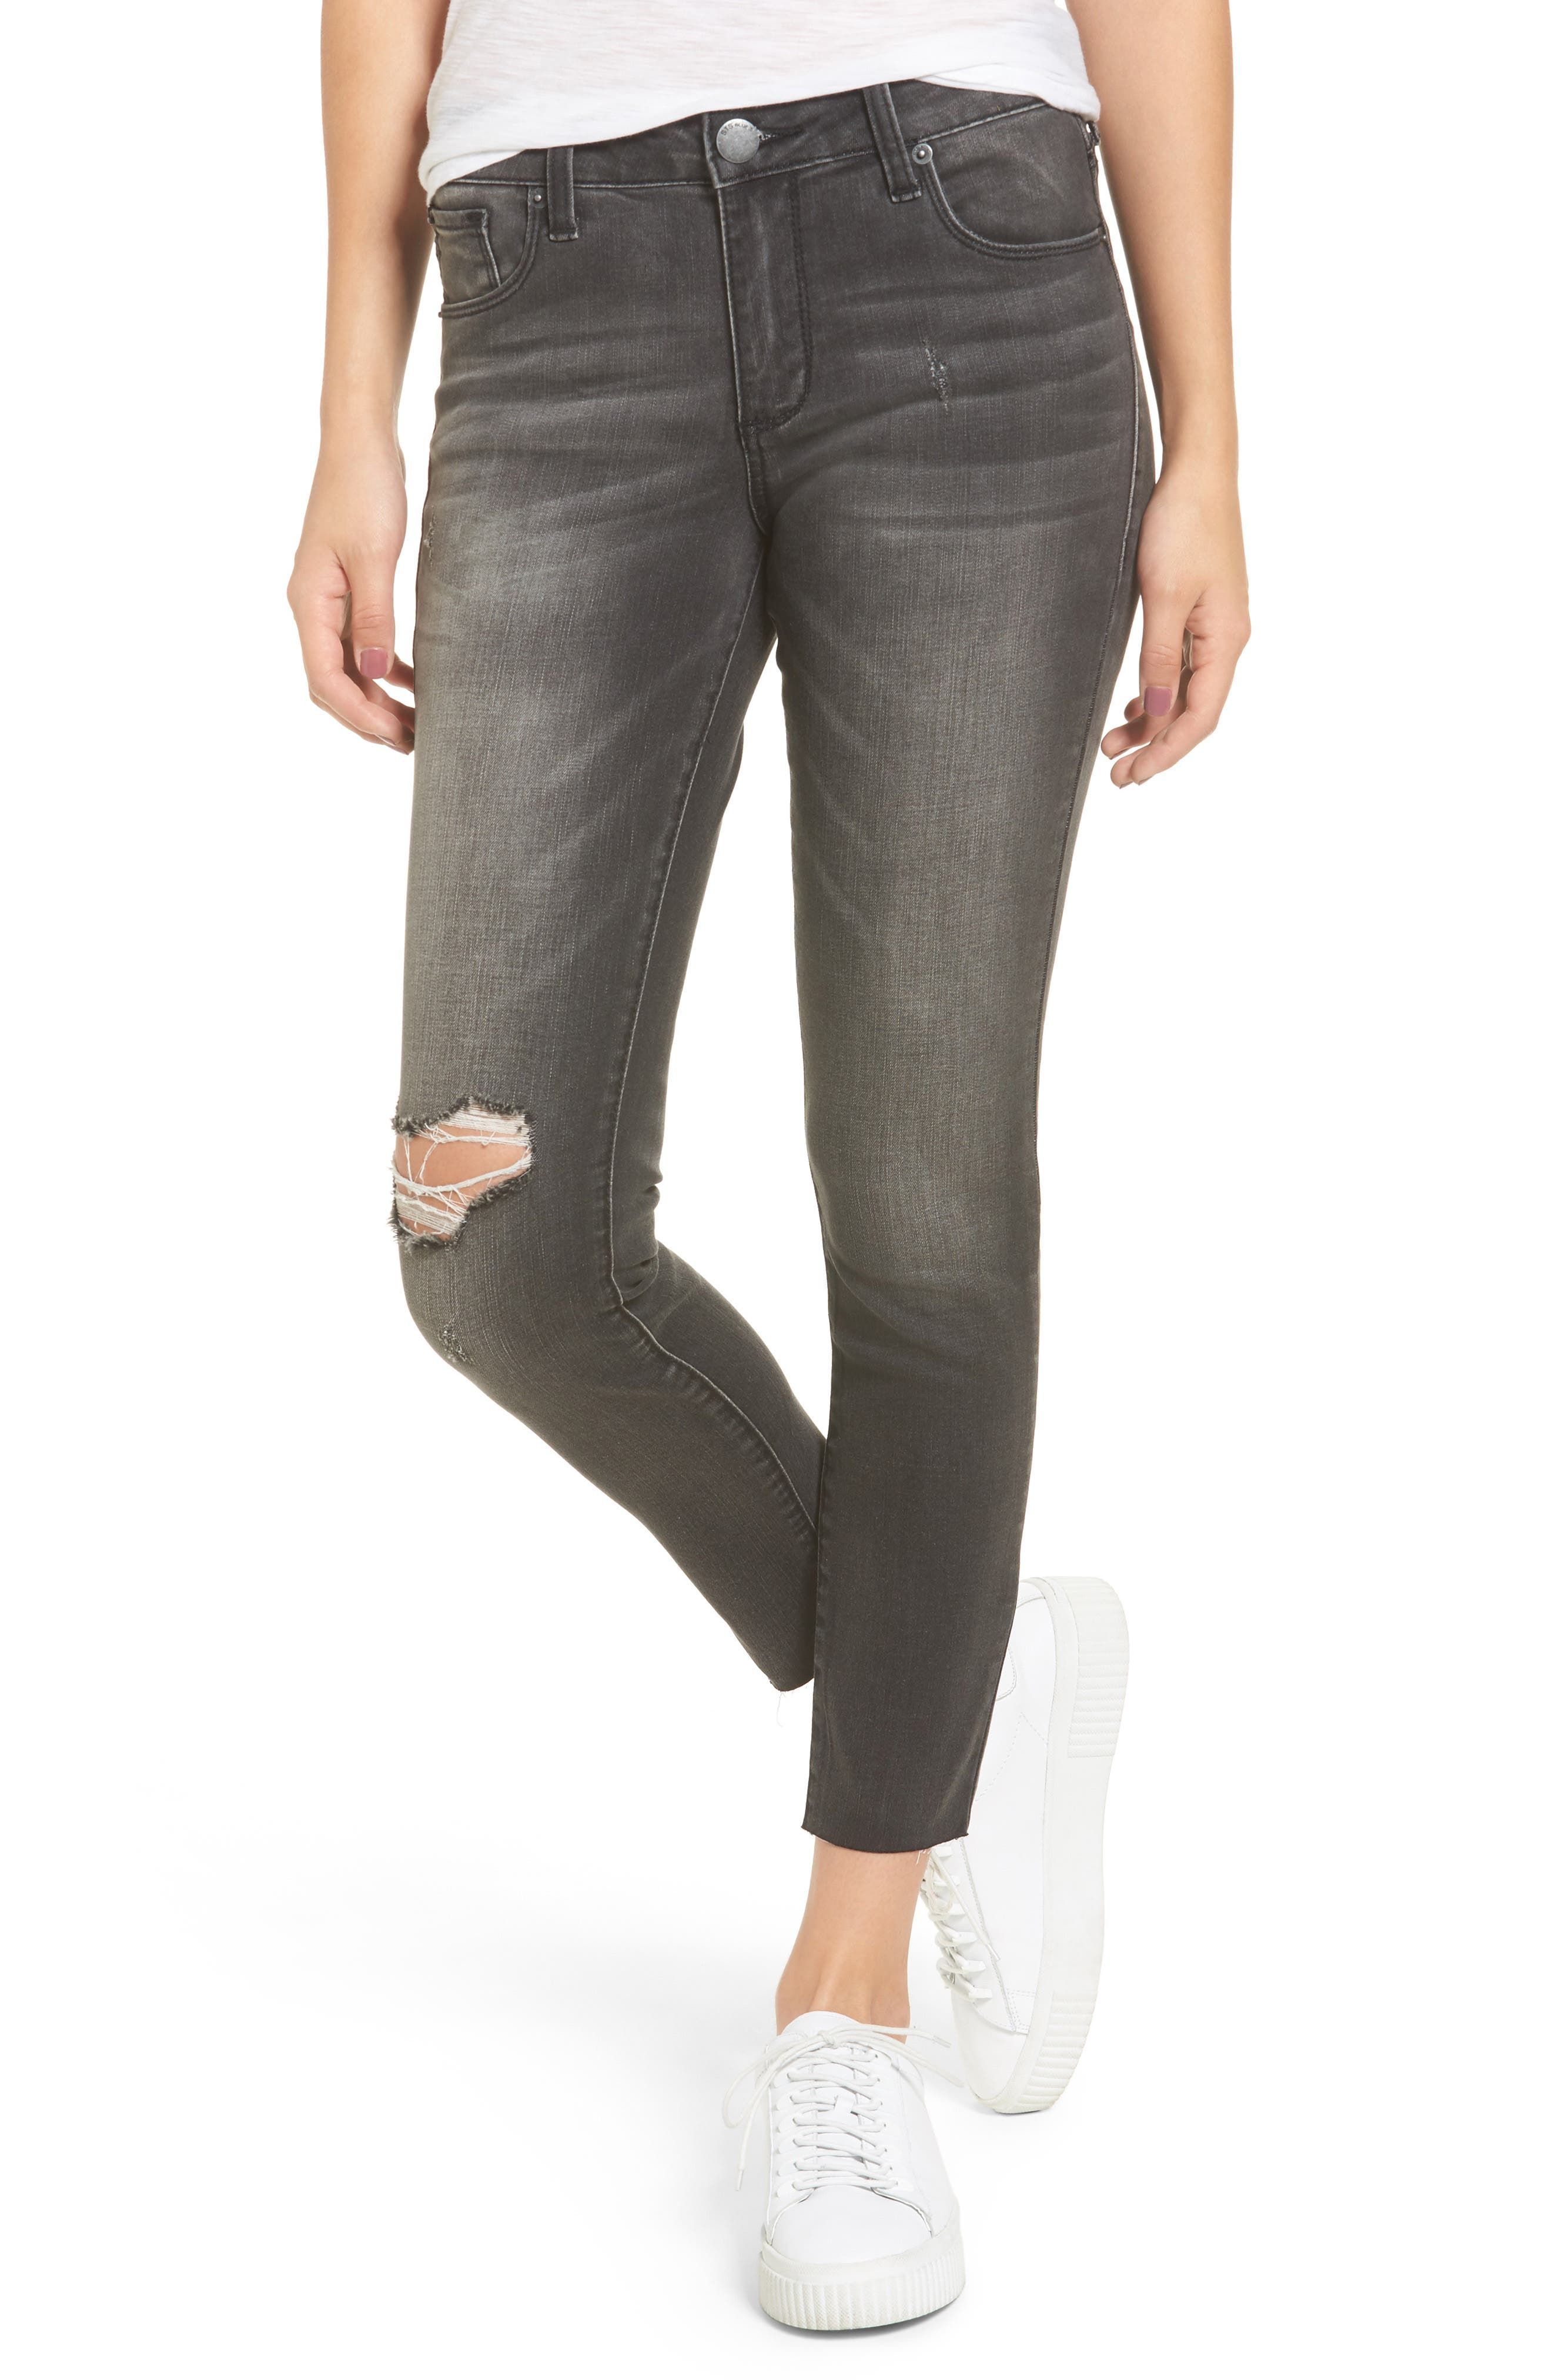 Alternate Image 1 Selected - STS Emma Ripped Crop Skinny Jeans (Jennings)